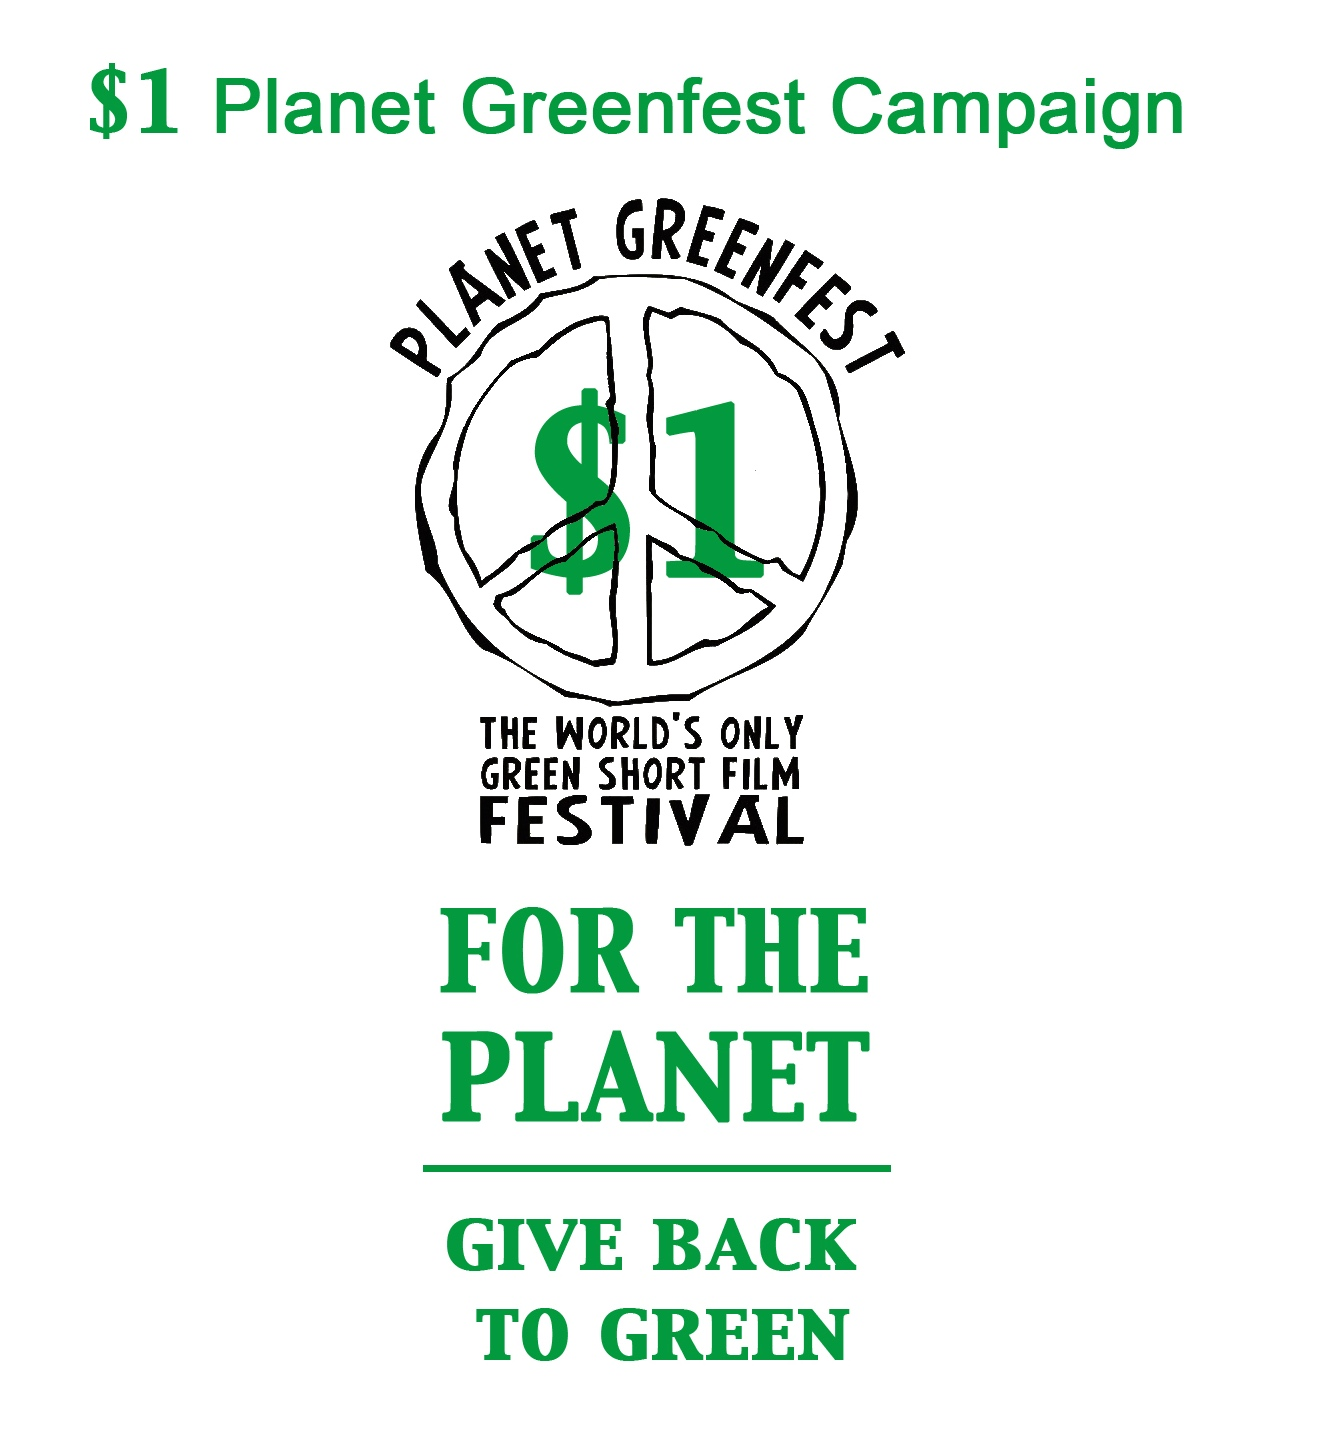 $1 Campaign For The Planet